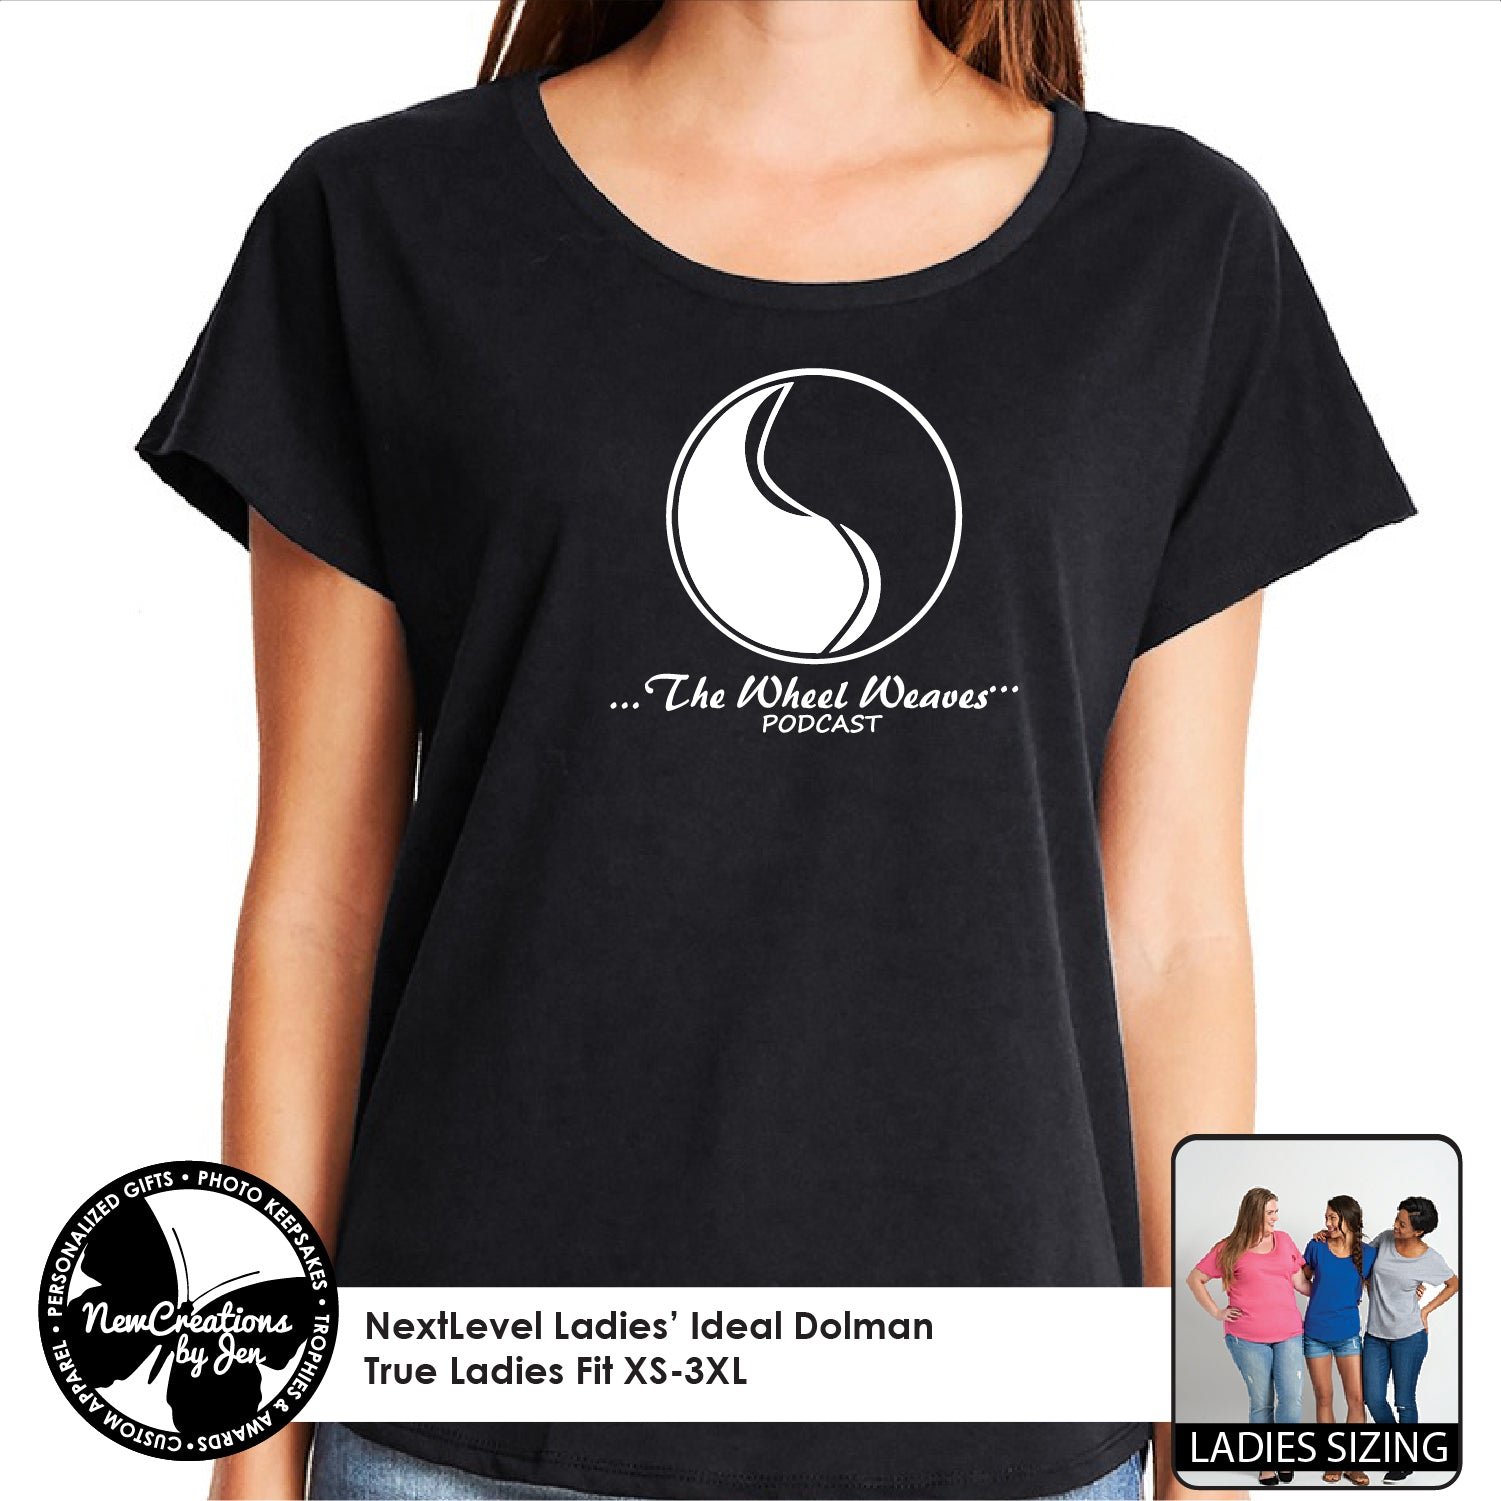 TWW - NextLevel Ladies' Dolman T-Shirt